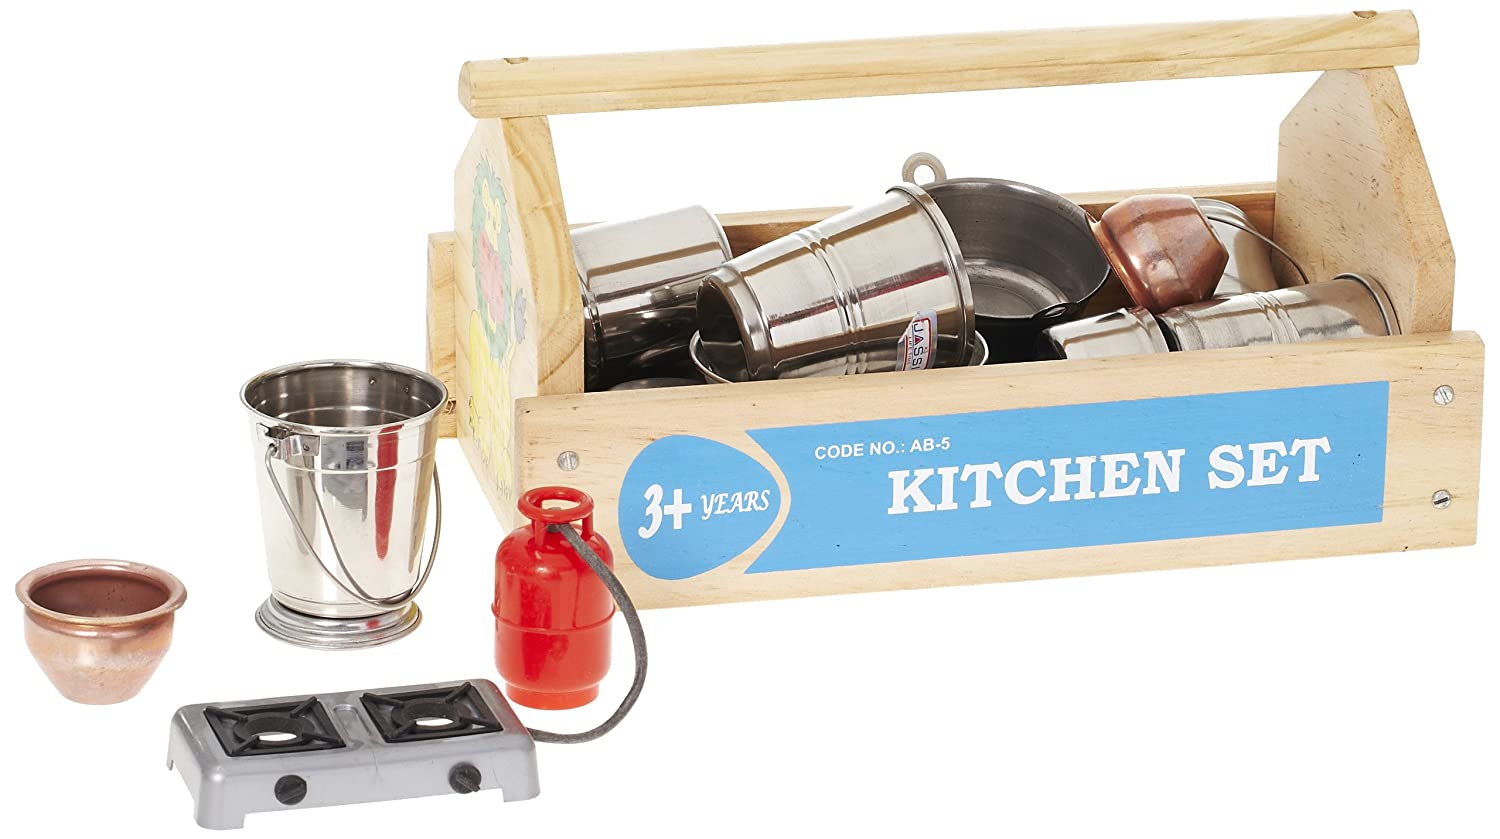 Buy little genius kitchen set multi color online at low prices in india amazon in